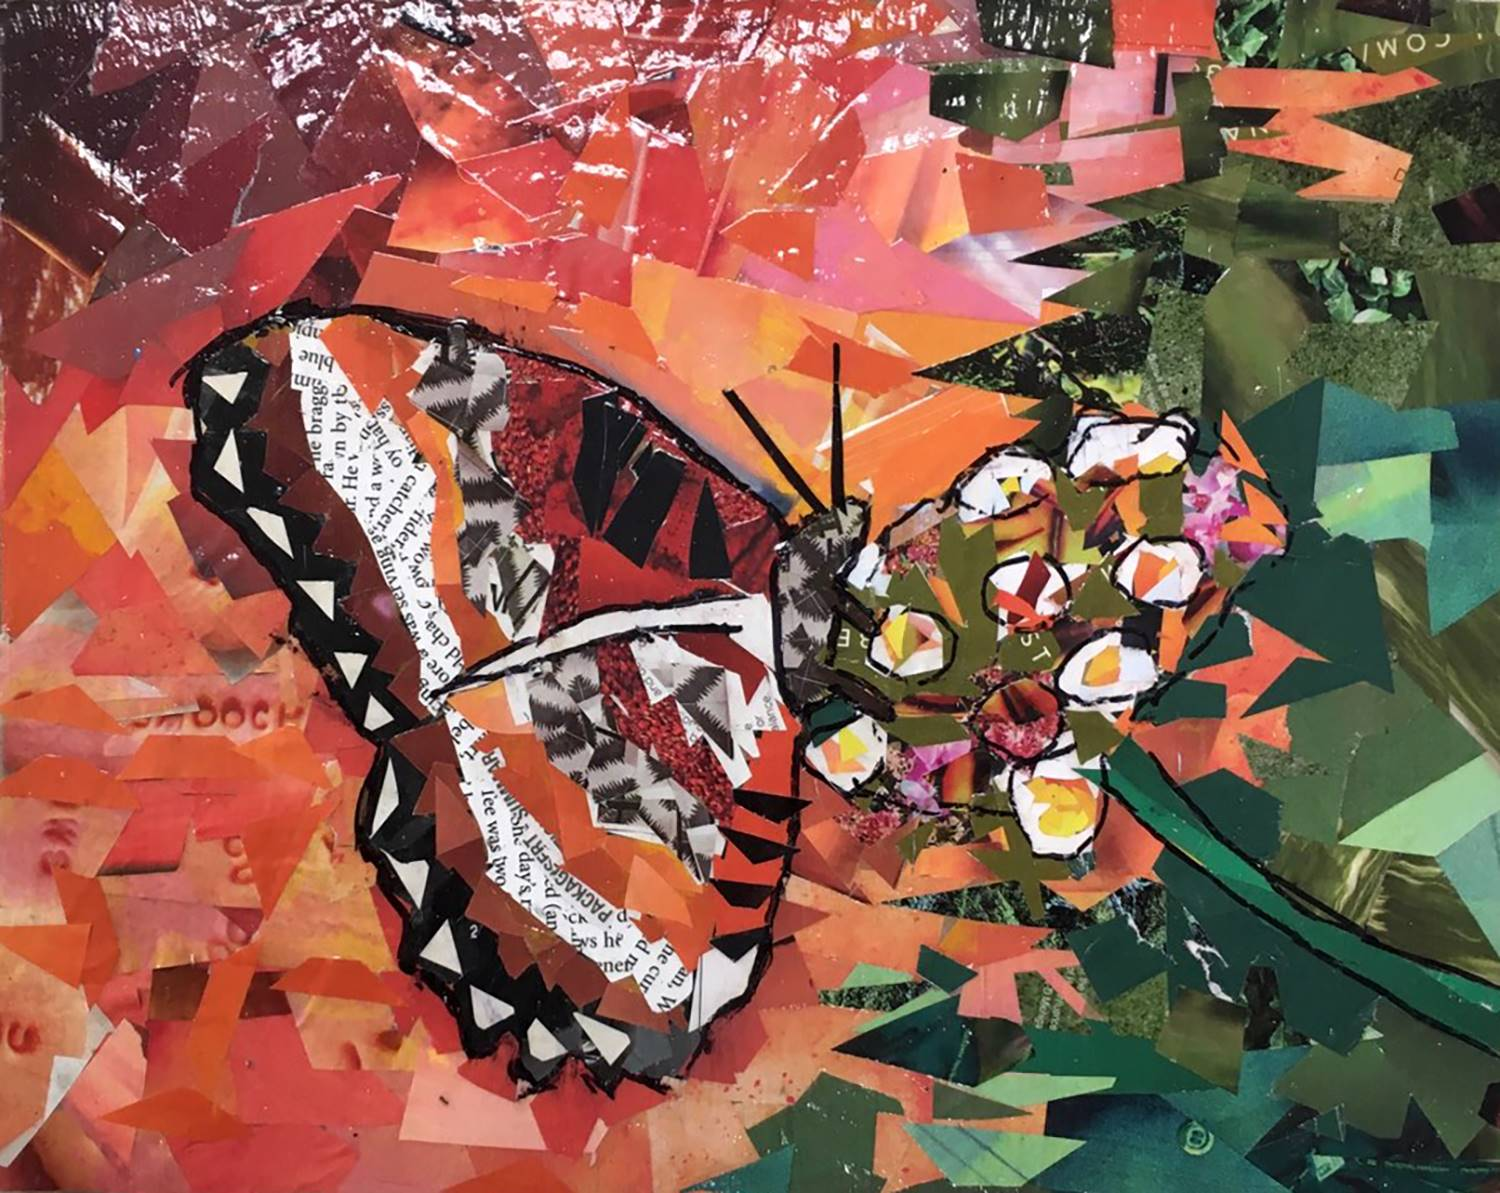 A montage creation of a Monarch butterfly on a flower created out of old magazines by Ariella at Ves